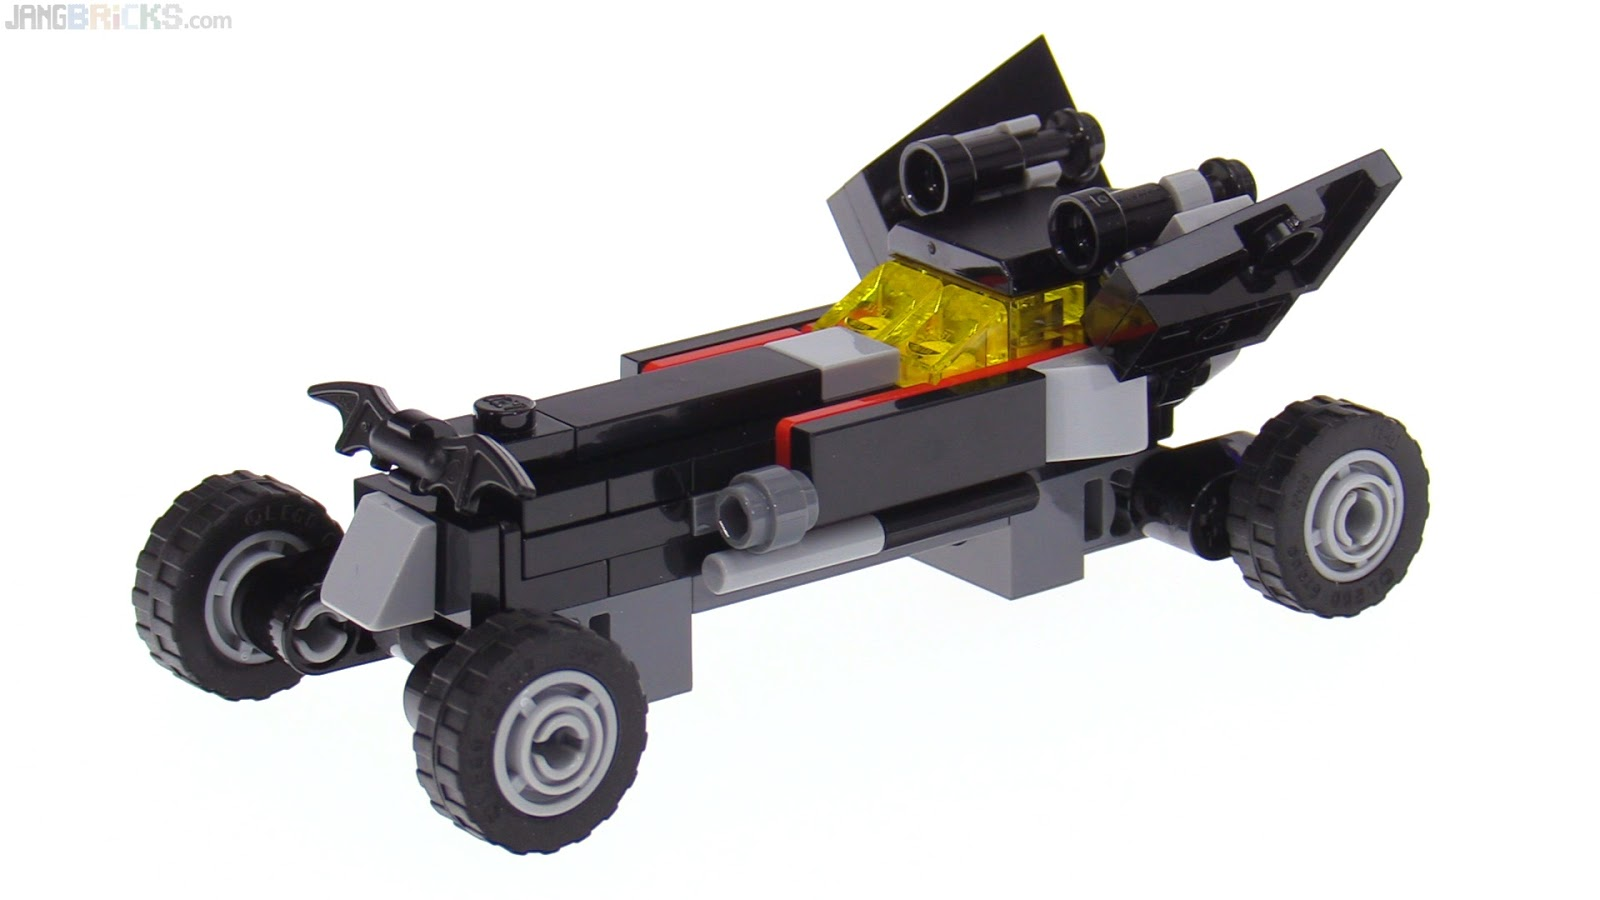 lego batman 3 batmobile - photo #26